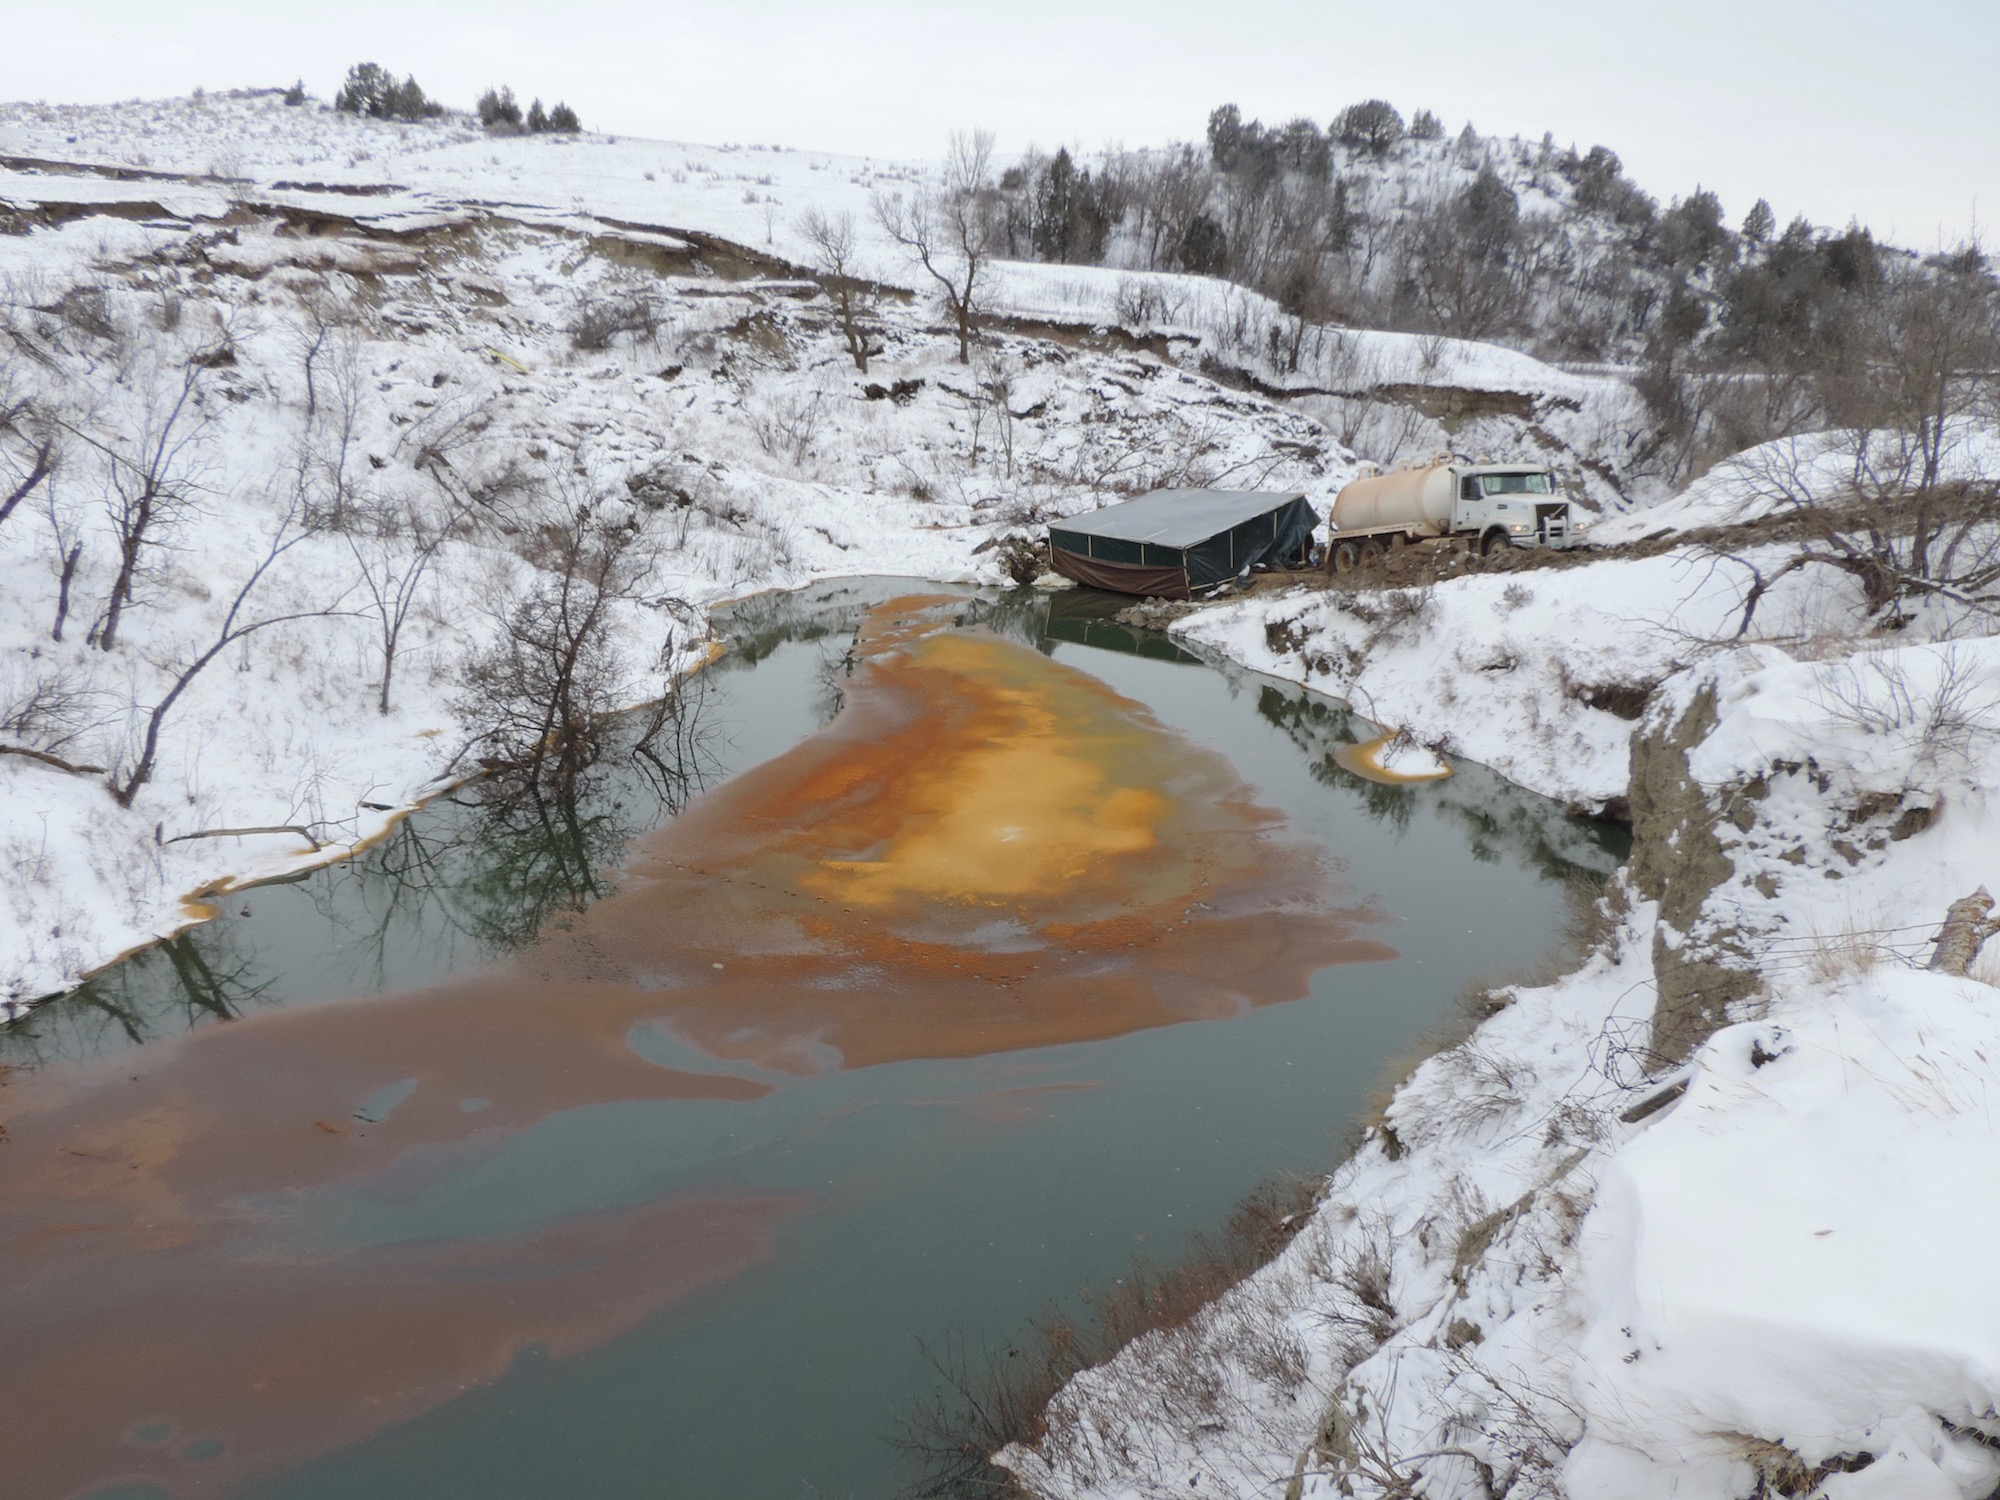 Pipeline continues to leak oil months after rupture in North Dakota